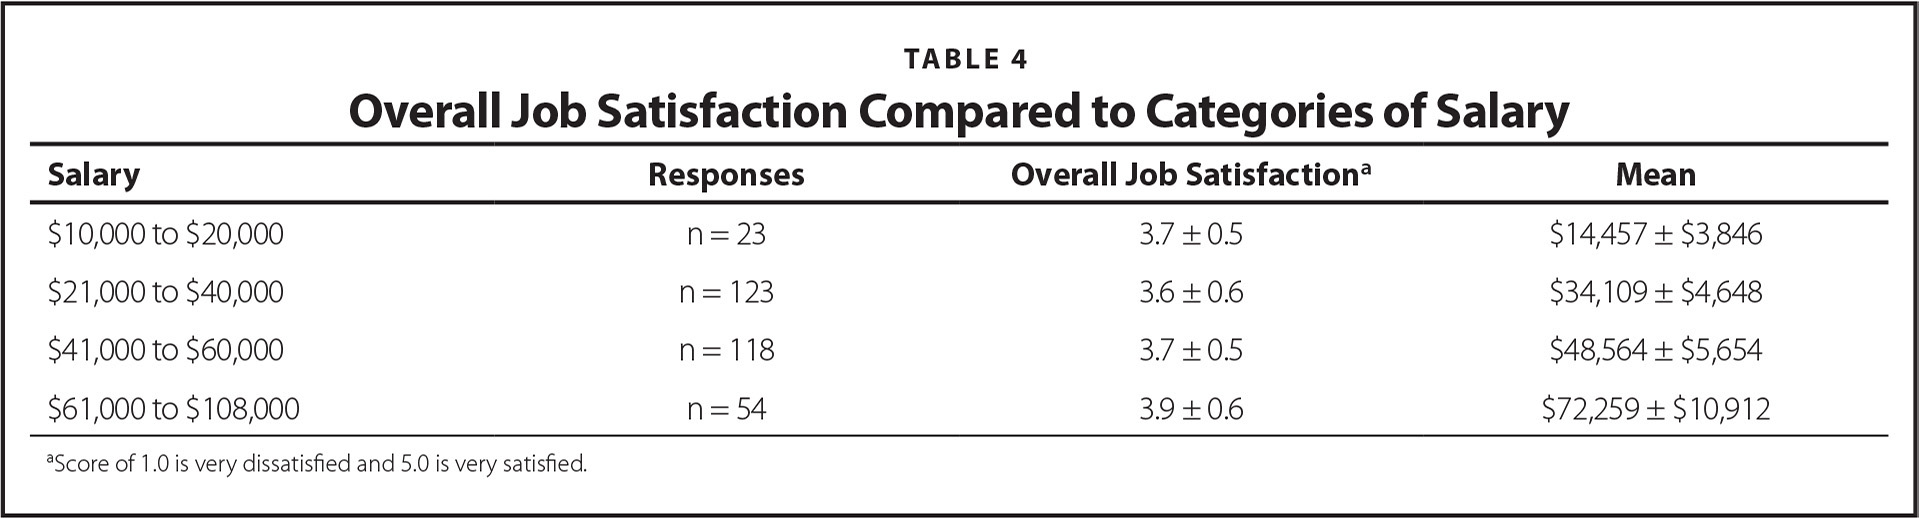 Overall Job Satisfaction Compared to Categories of Salary